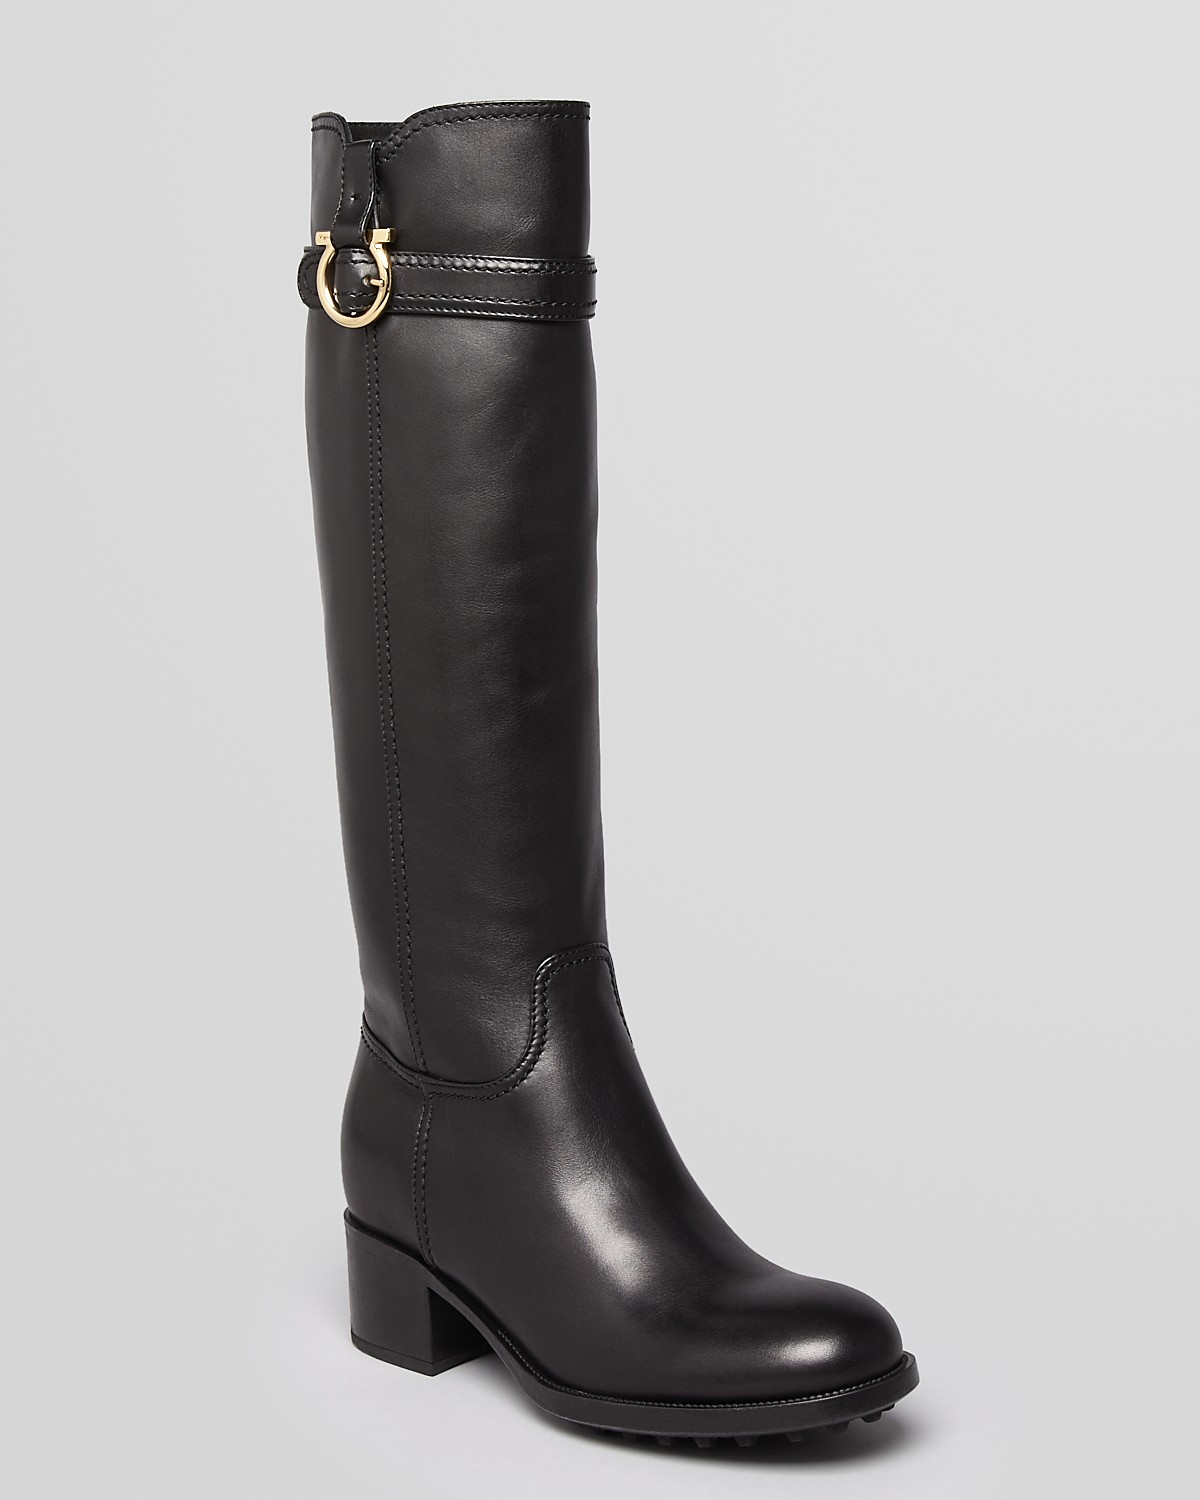 Cheap Online Free Shipping Good Selling Salvatore Ferragamo Riding Boots Shopping Online Sale Online View For Sale Brand New Unisex For Sale 0t240X